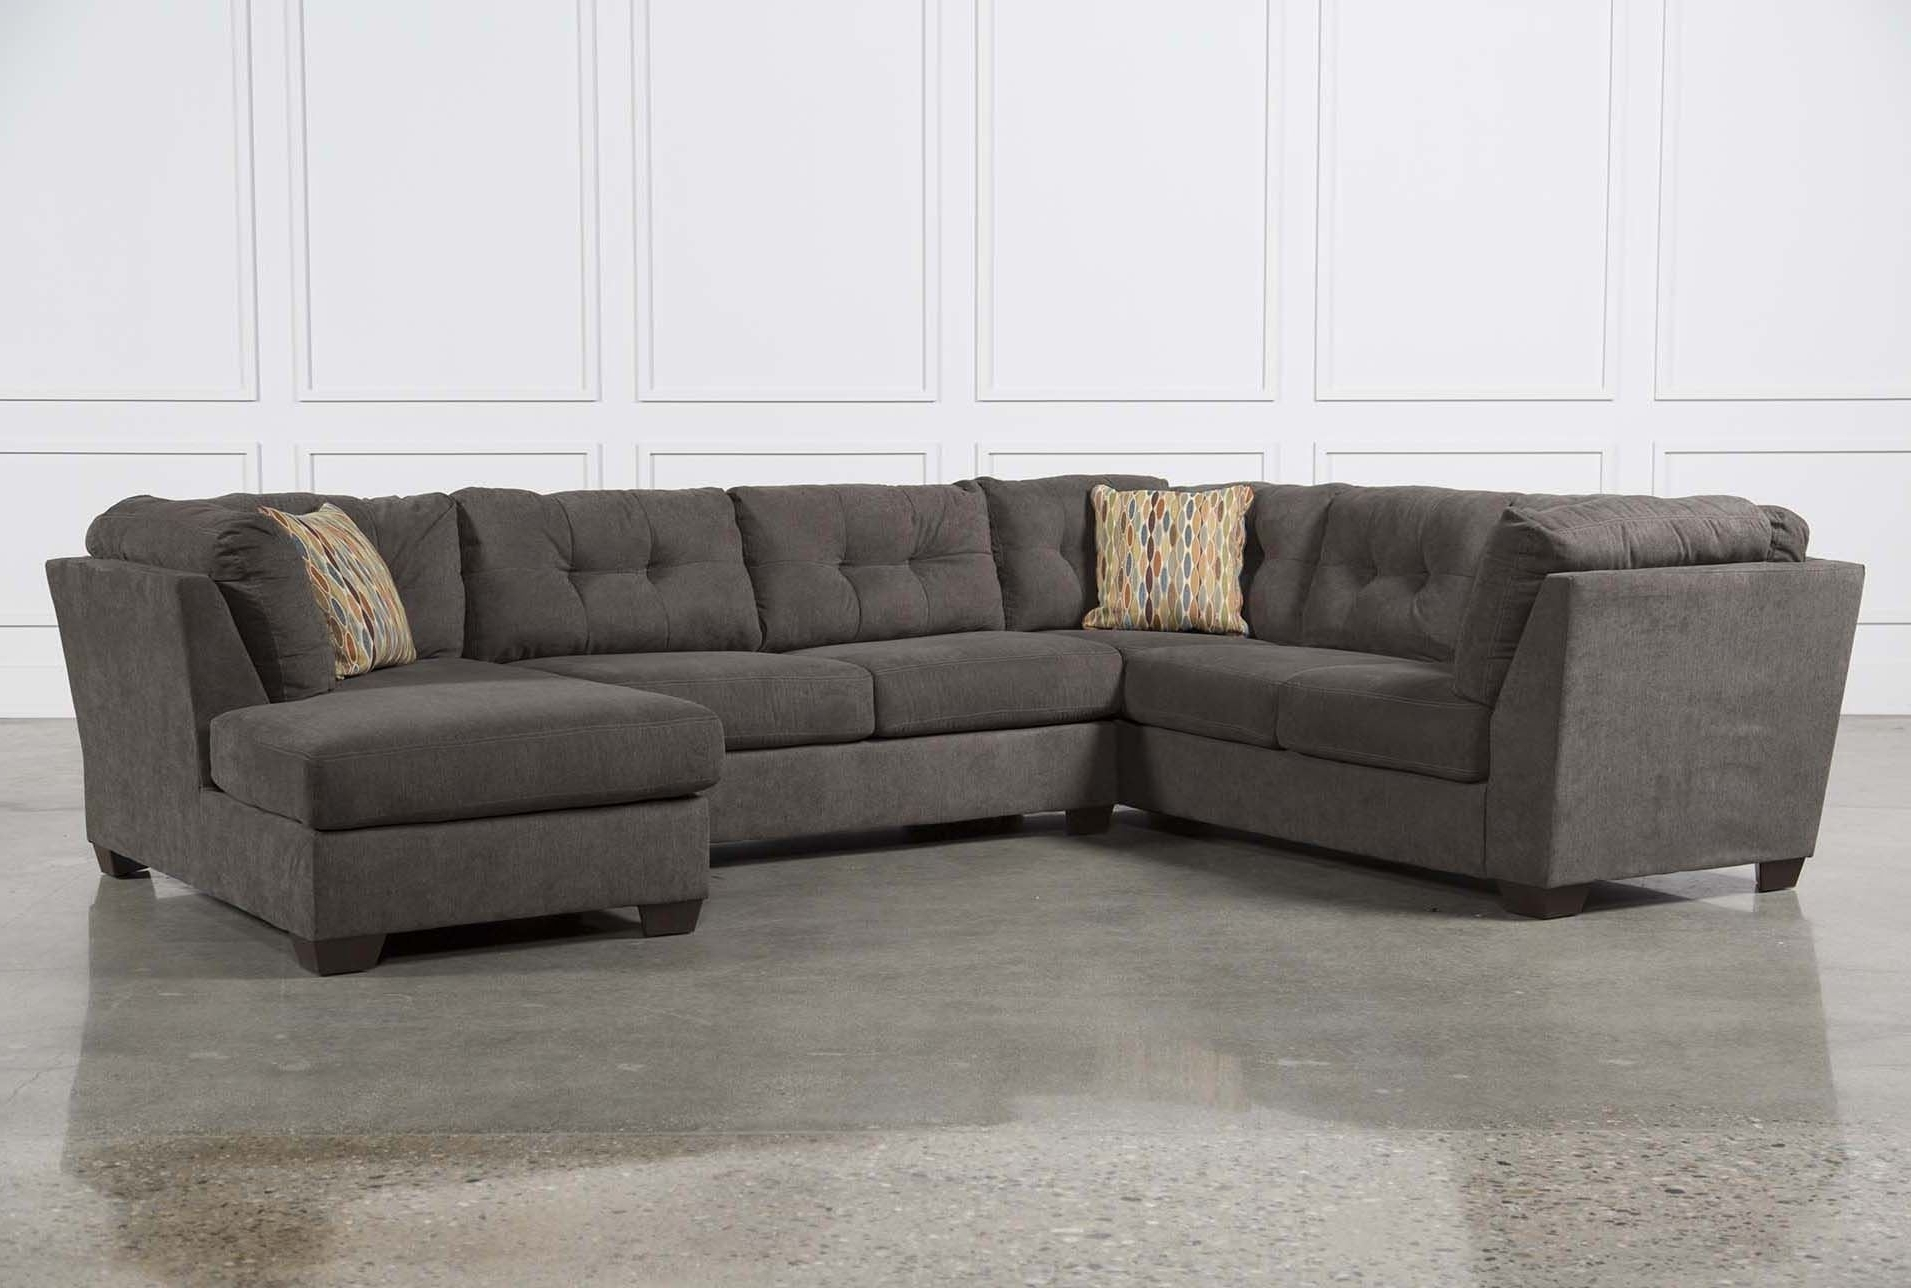 Sectional Chaises Pertaining To Well Known Furniture: Leather Chaise Sectional Sofa Chaise Sectional (View 13 of 15)